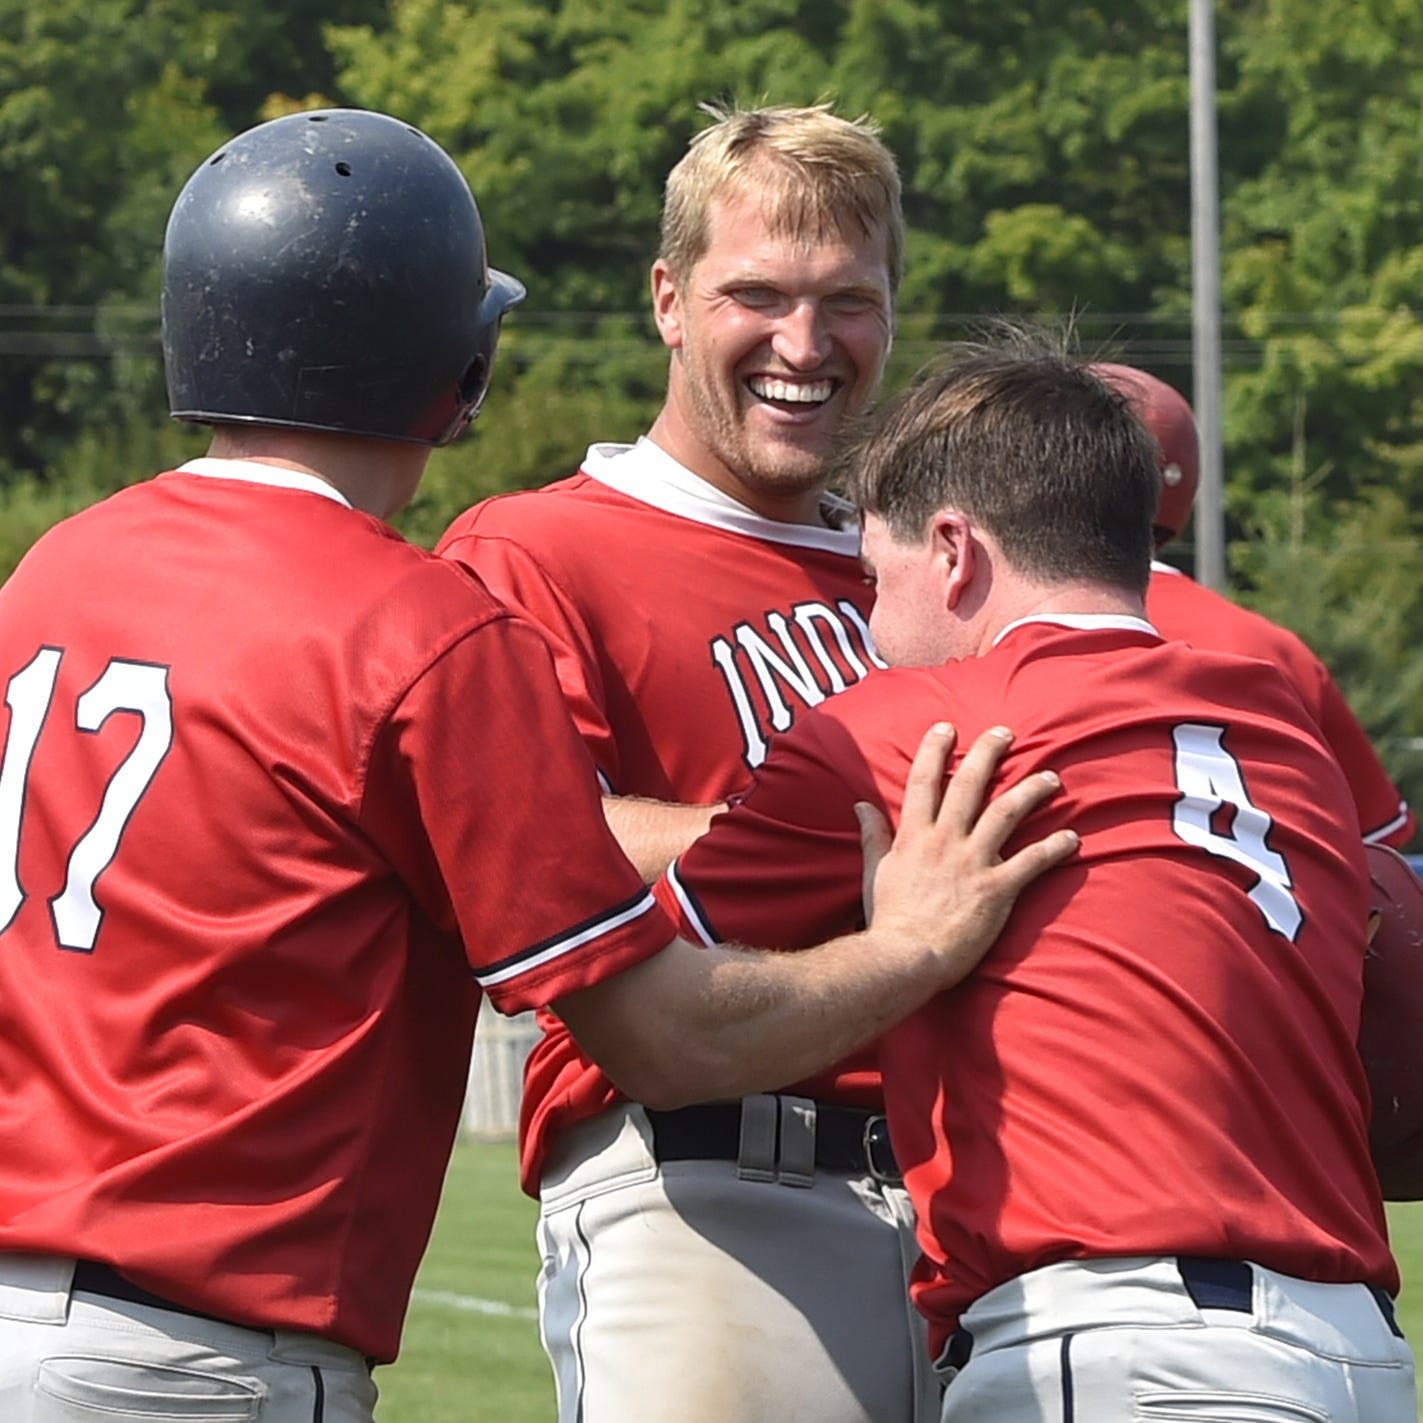 Door County League baseball: Egg Harbor spoils Sister Bay's party ... for now